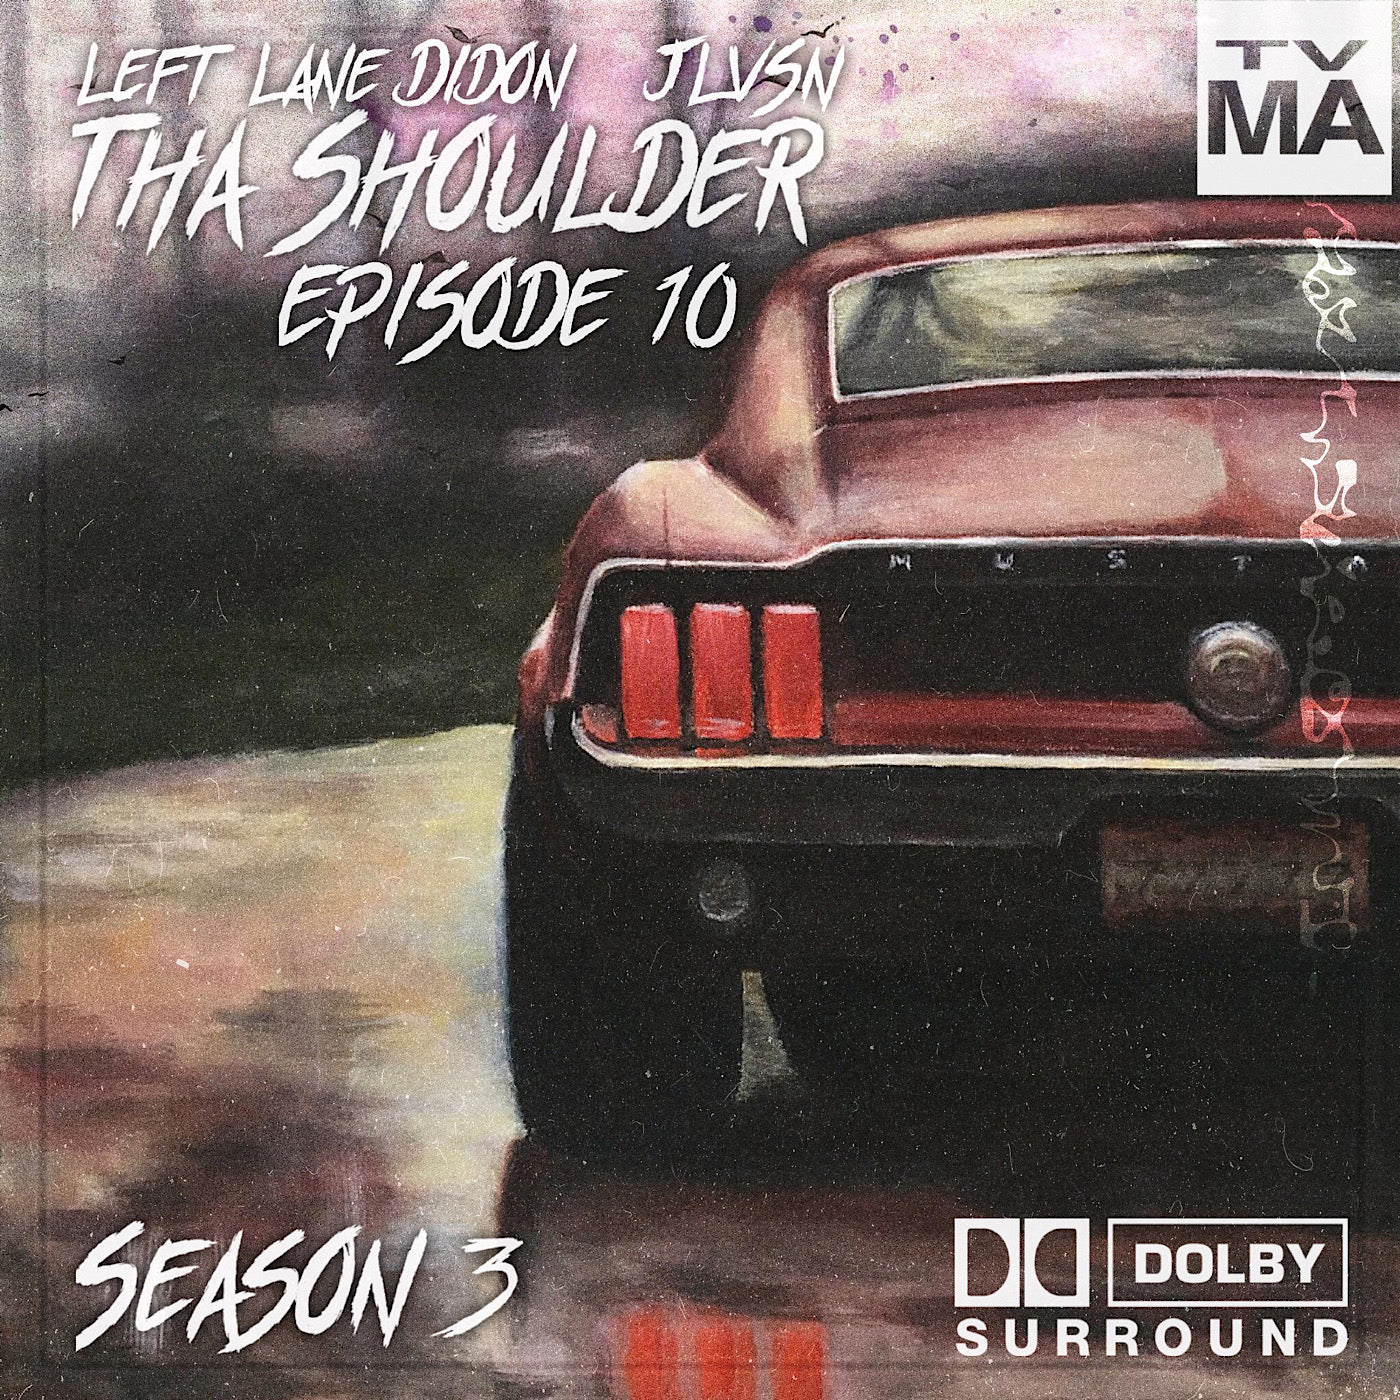 THA SHOULDER EPISODE 10. LEFT LANE DIDON AND JLVSN COVER